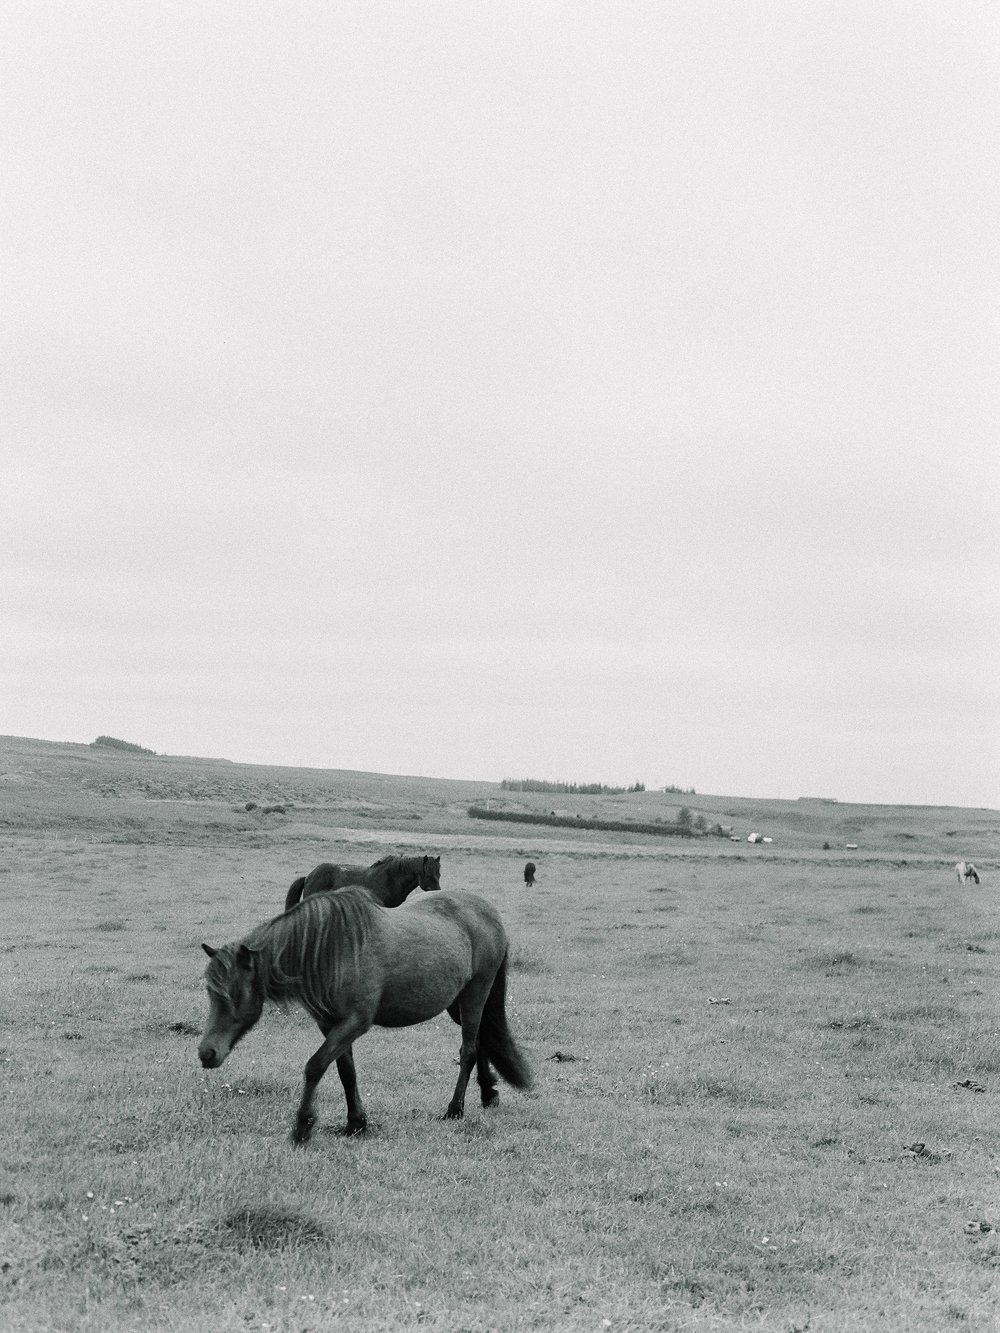 Horses in Iceland by Elli Jane now on Cottage Hill16.jpg